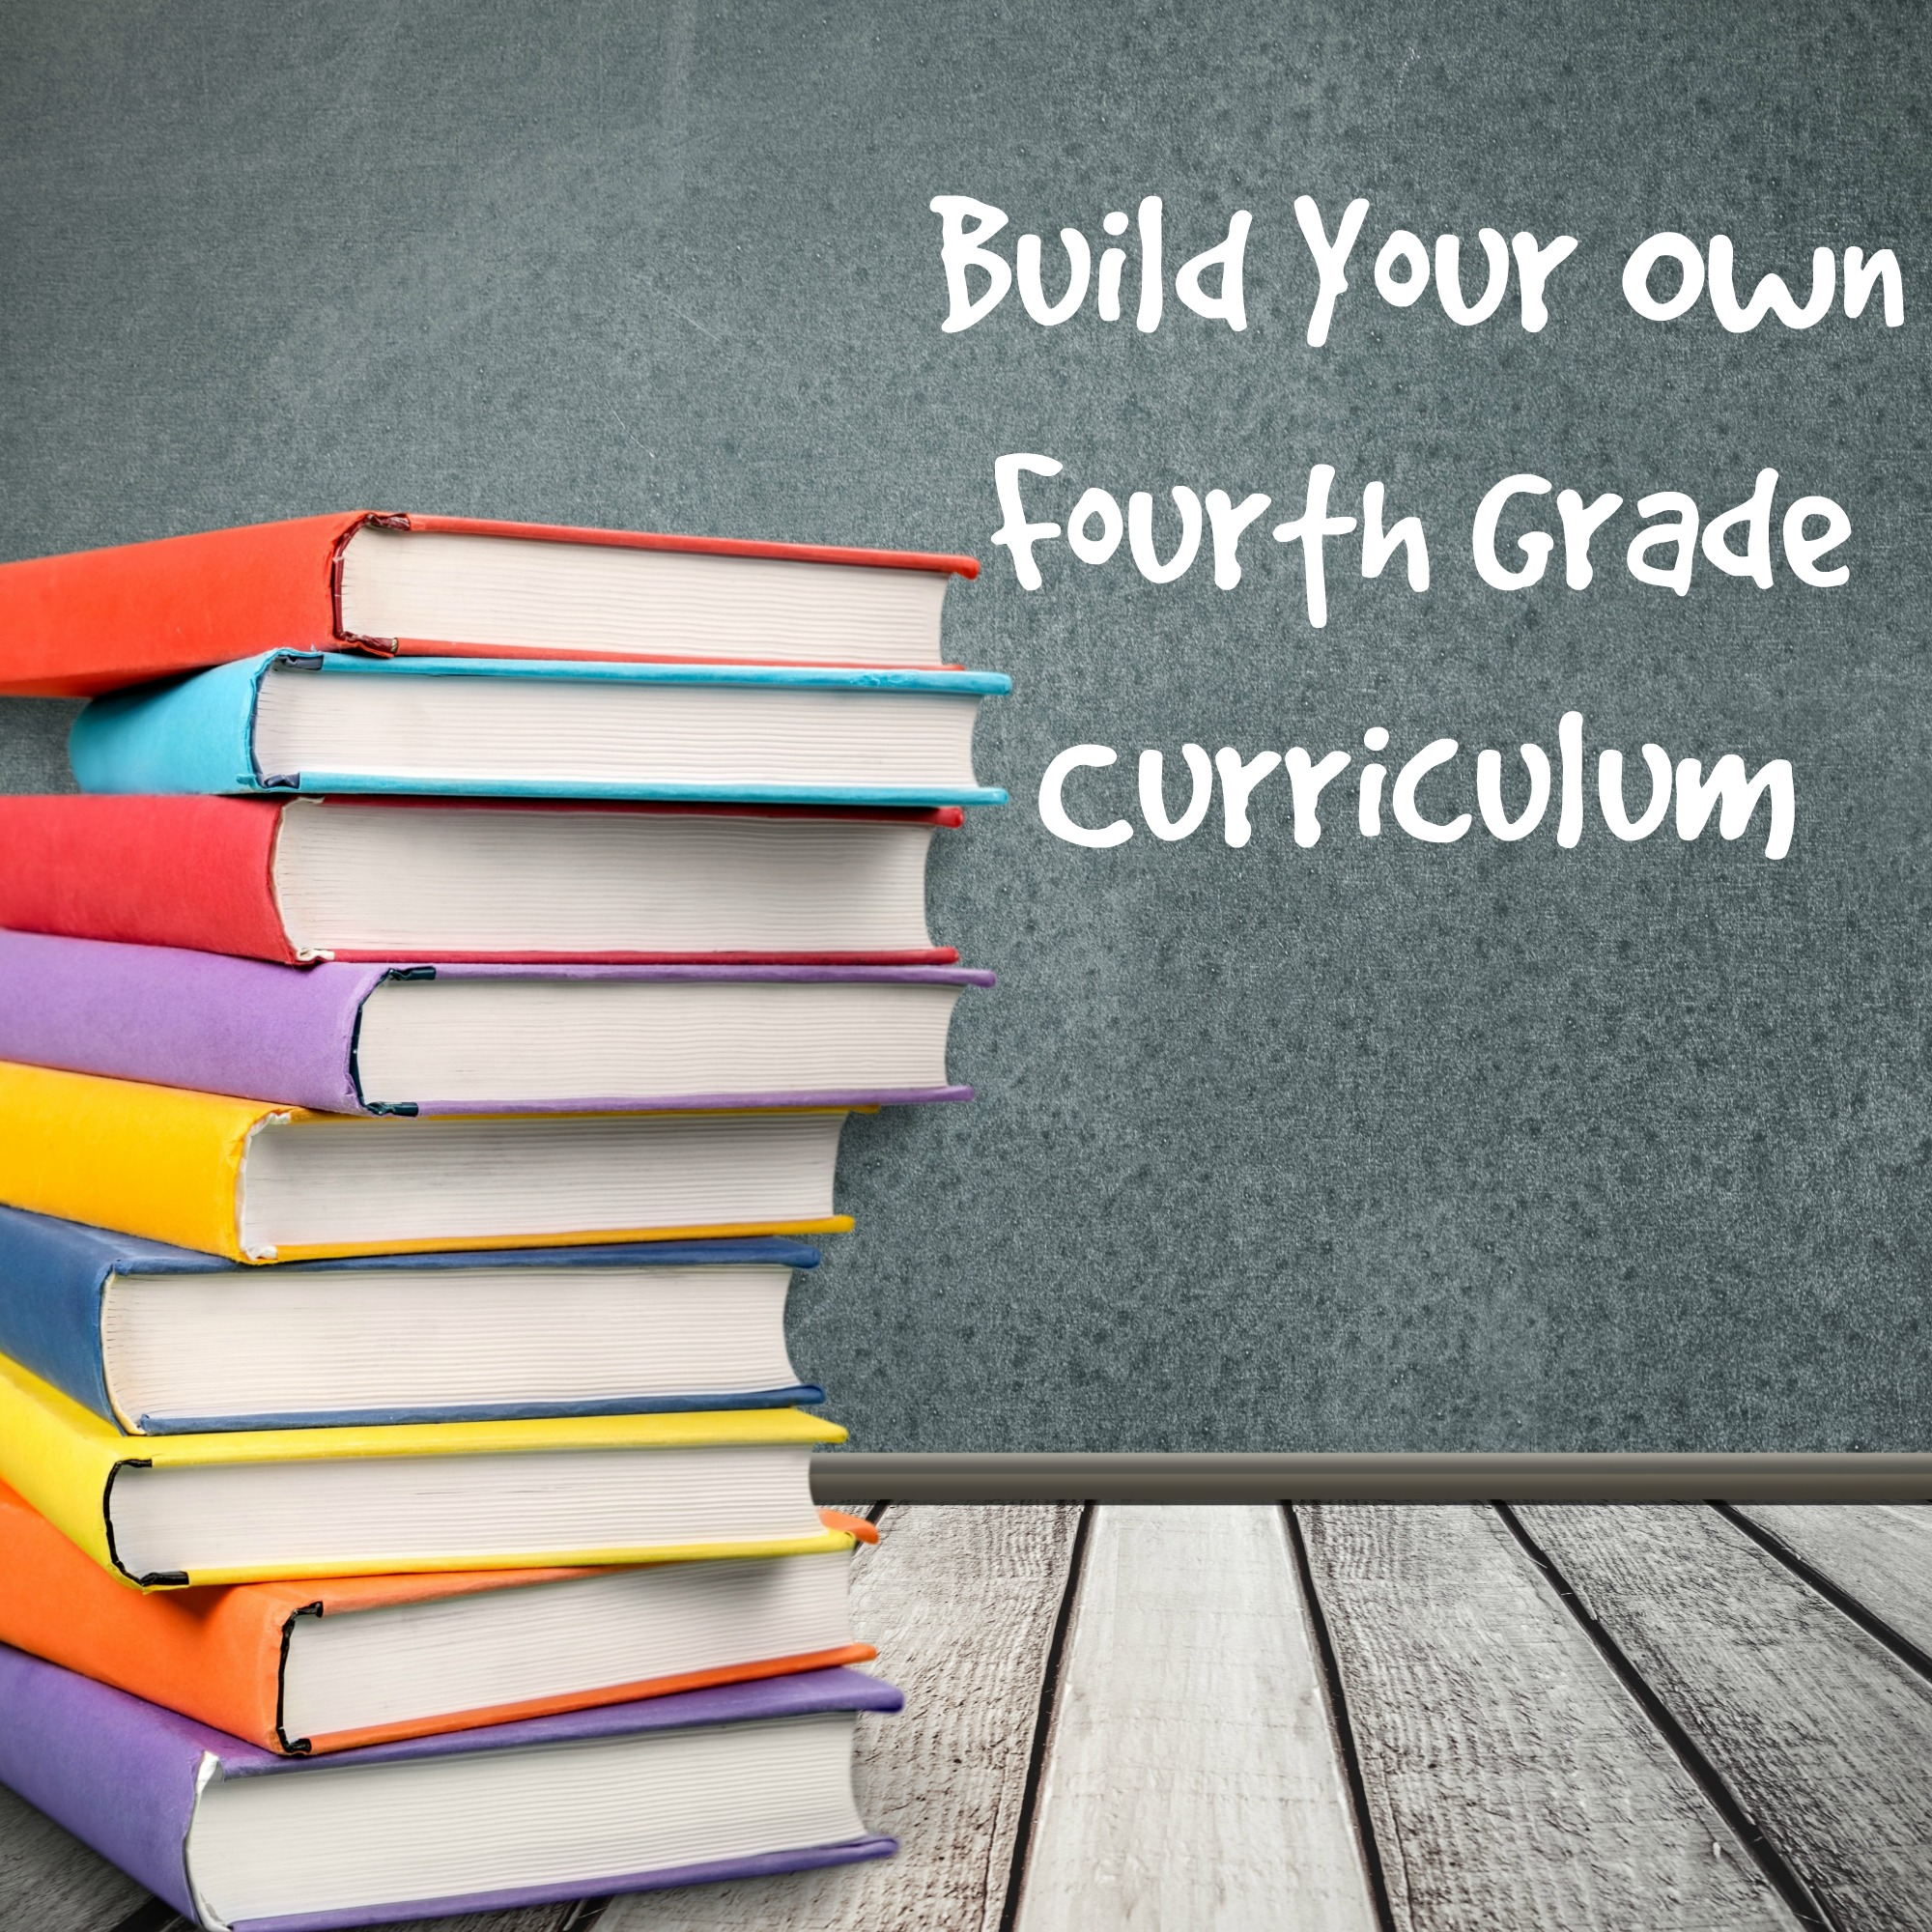 Build Your Own Fourth Grade Curriculum